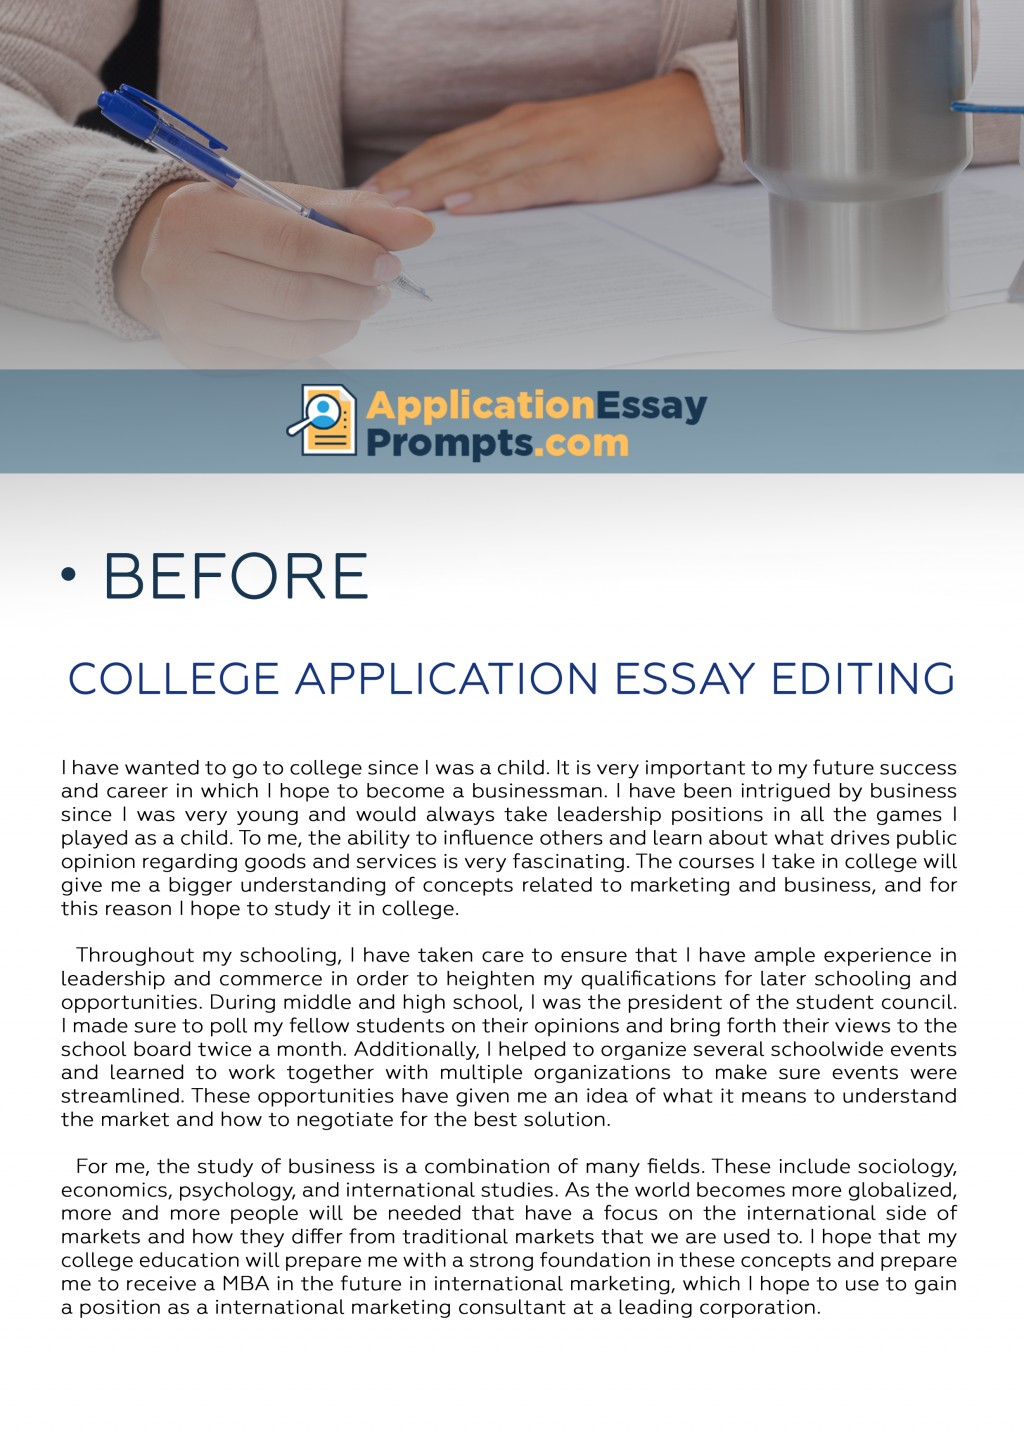 019 College Essay Editing Before Amazing Services Service Reviews Free Large